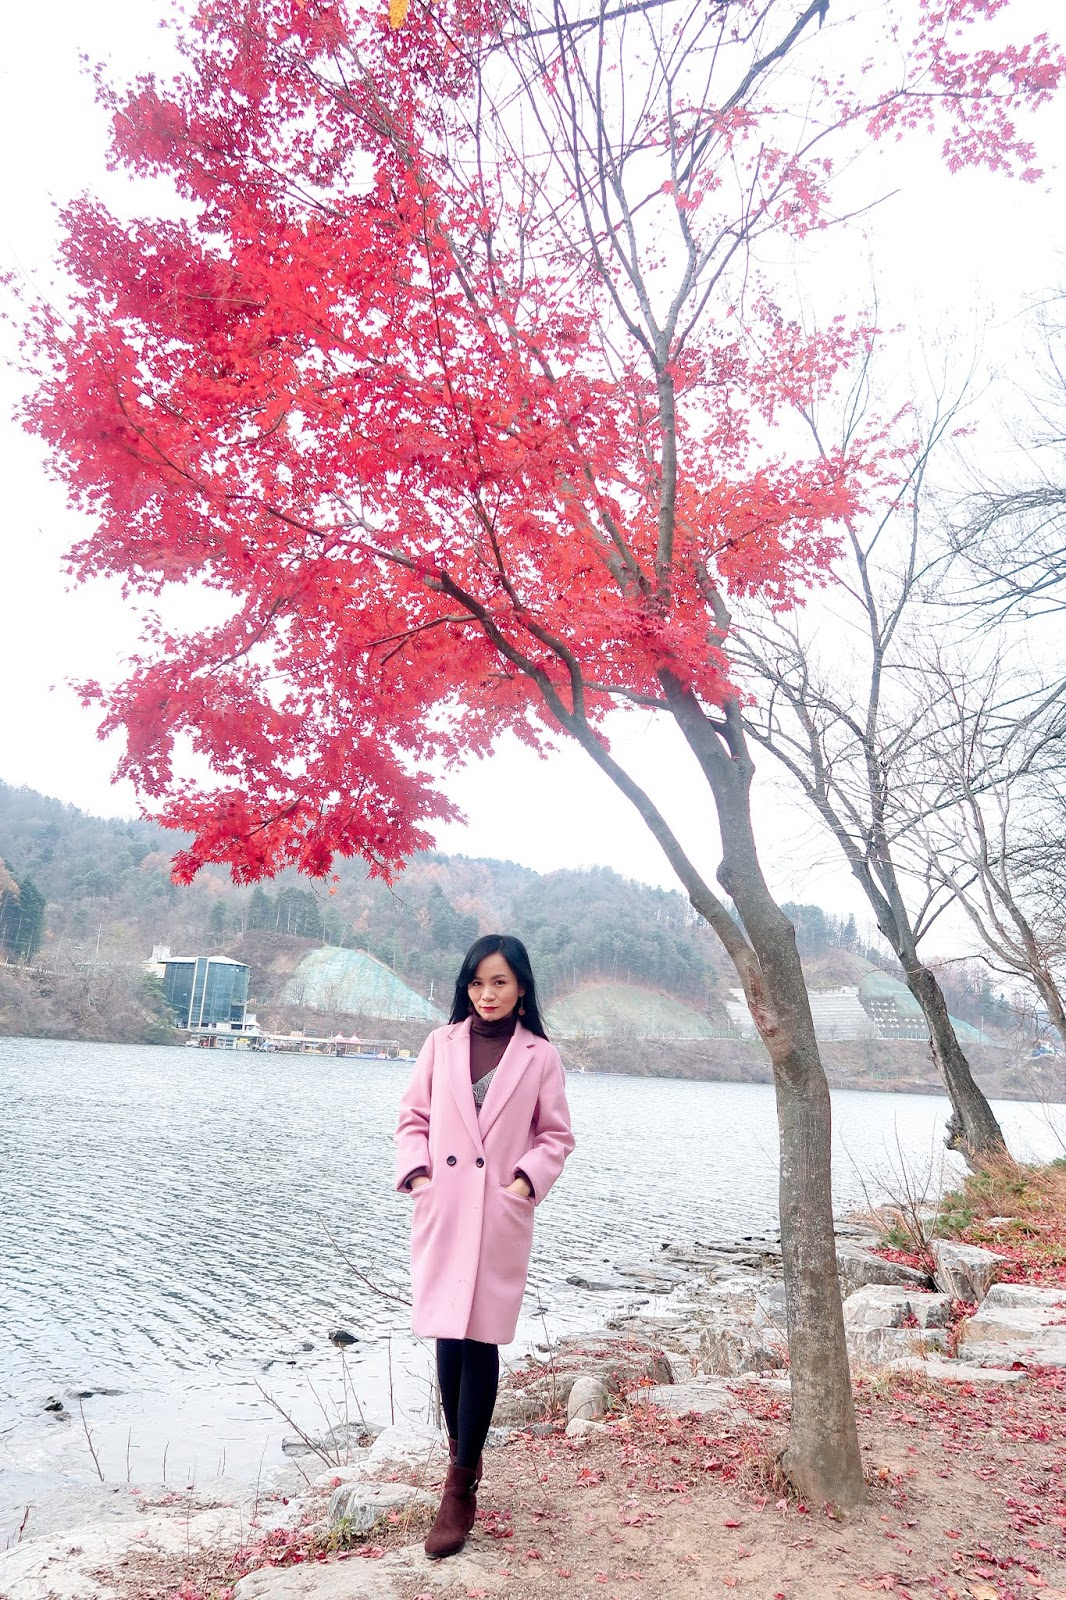 Real Asian Beauty: HOW MUCH MONEY YOU NEED TO GO TO SOUTH KOREA